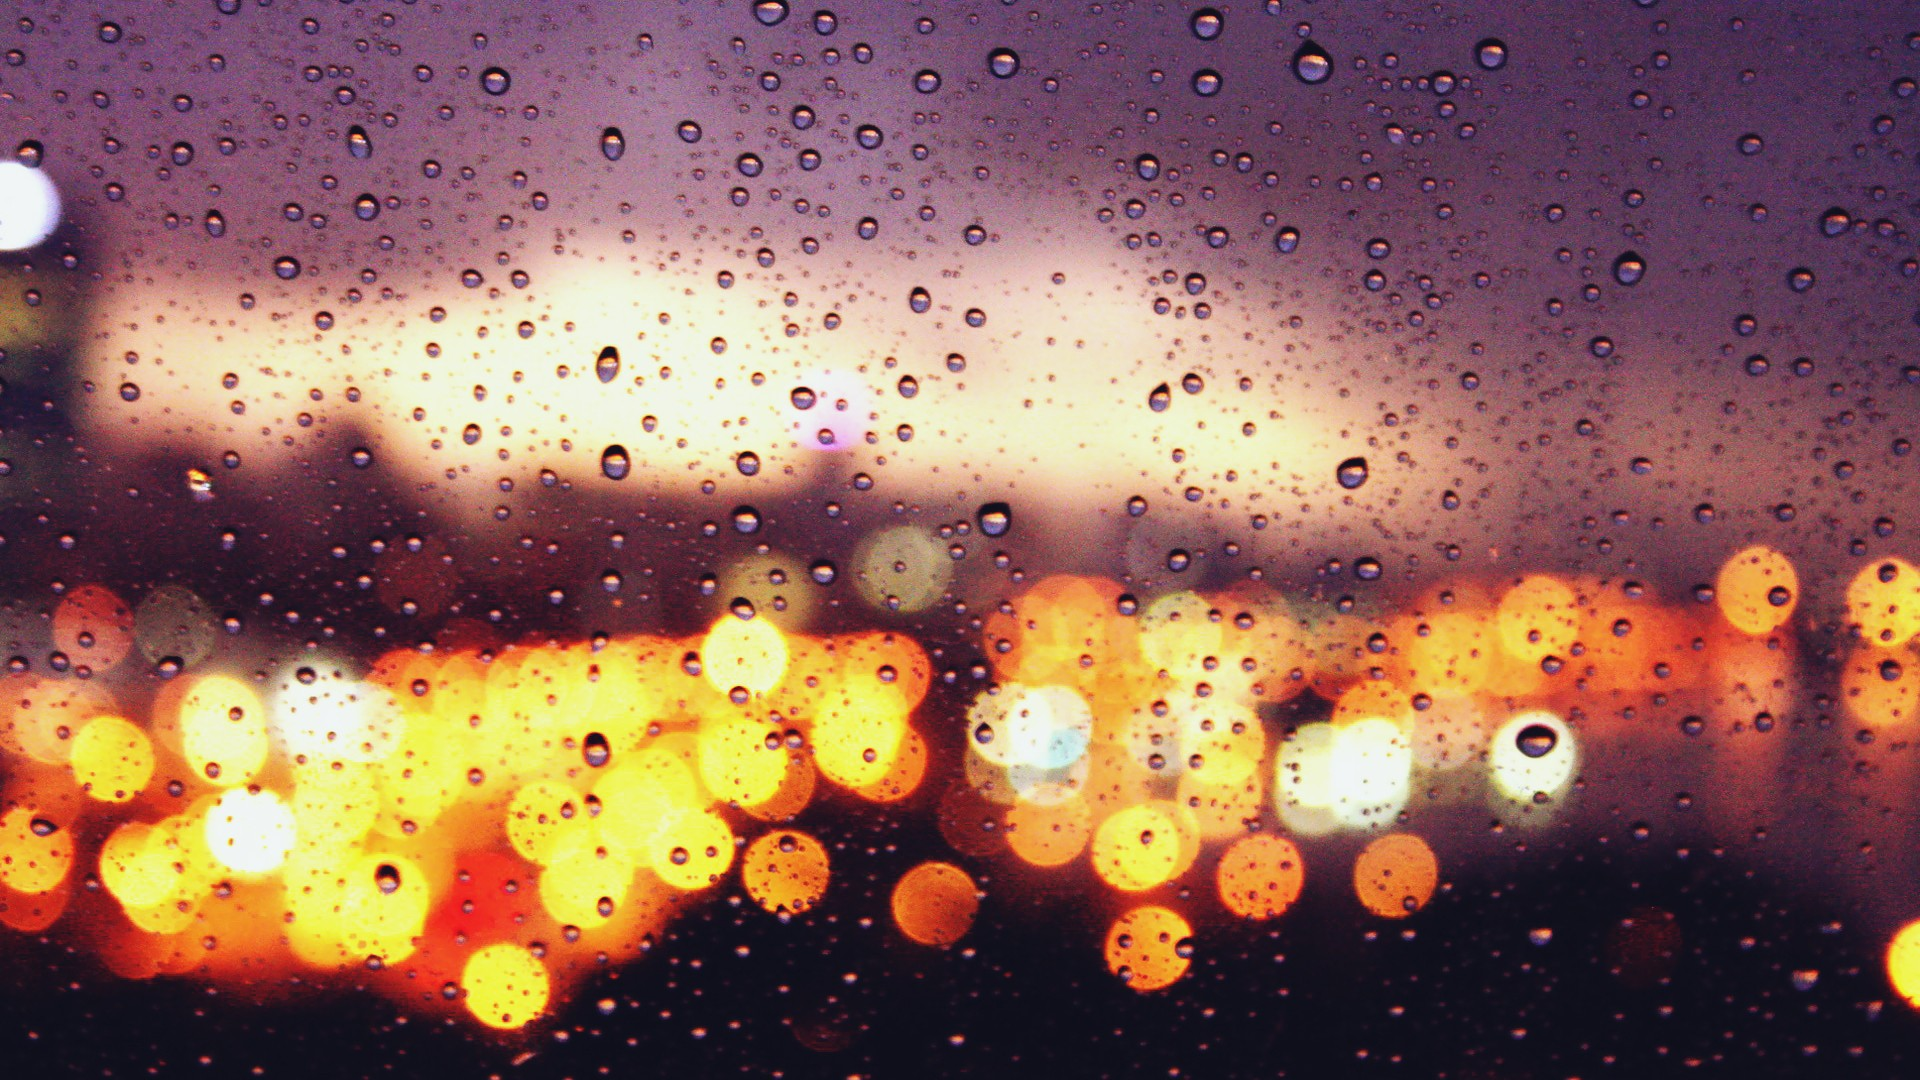 Bokeh Lights Glass Car Drops Water Rain Wallpaper